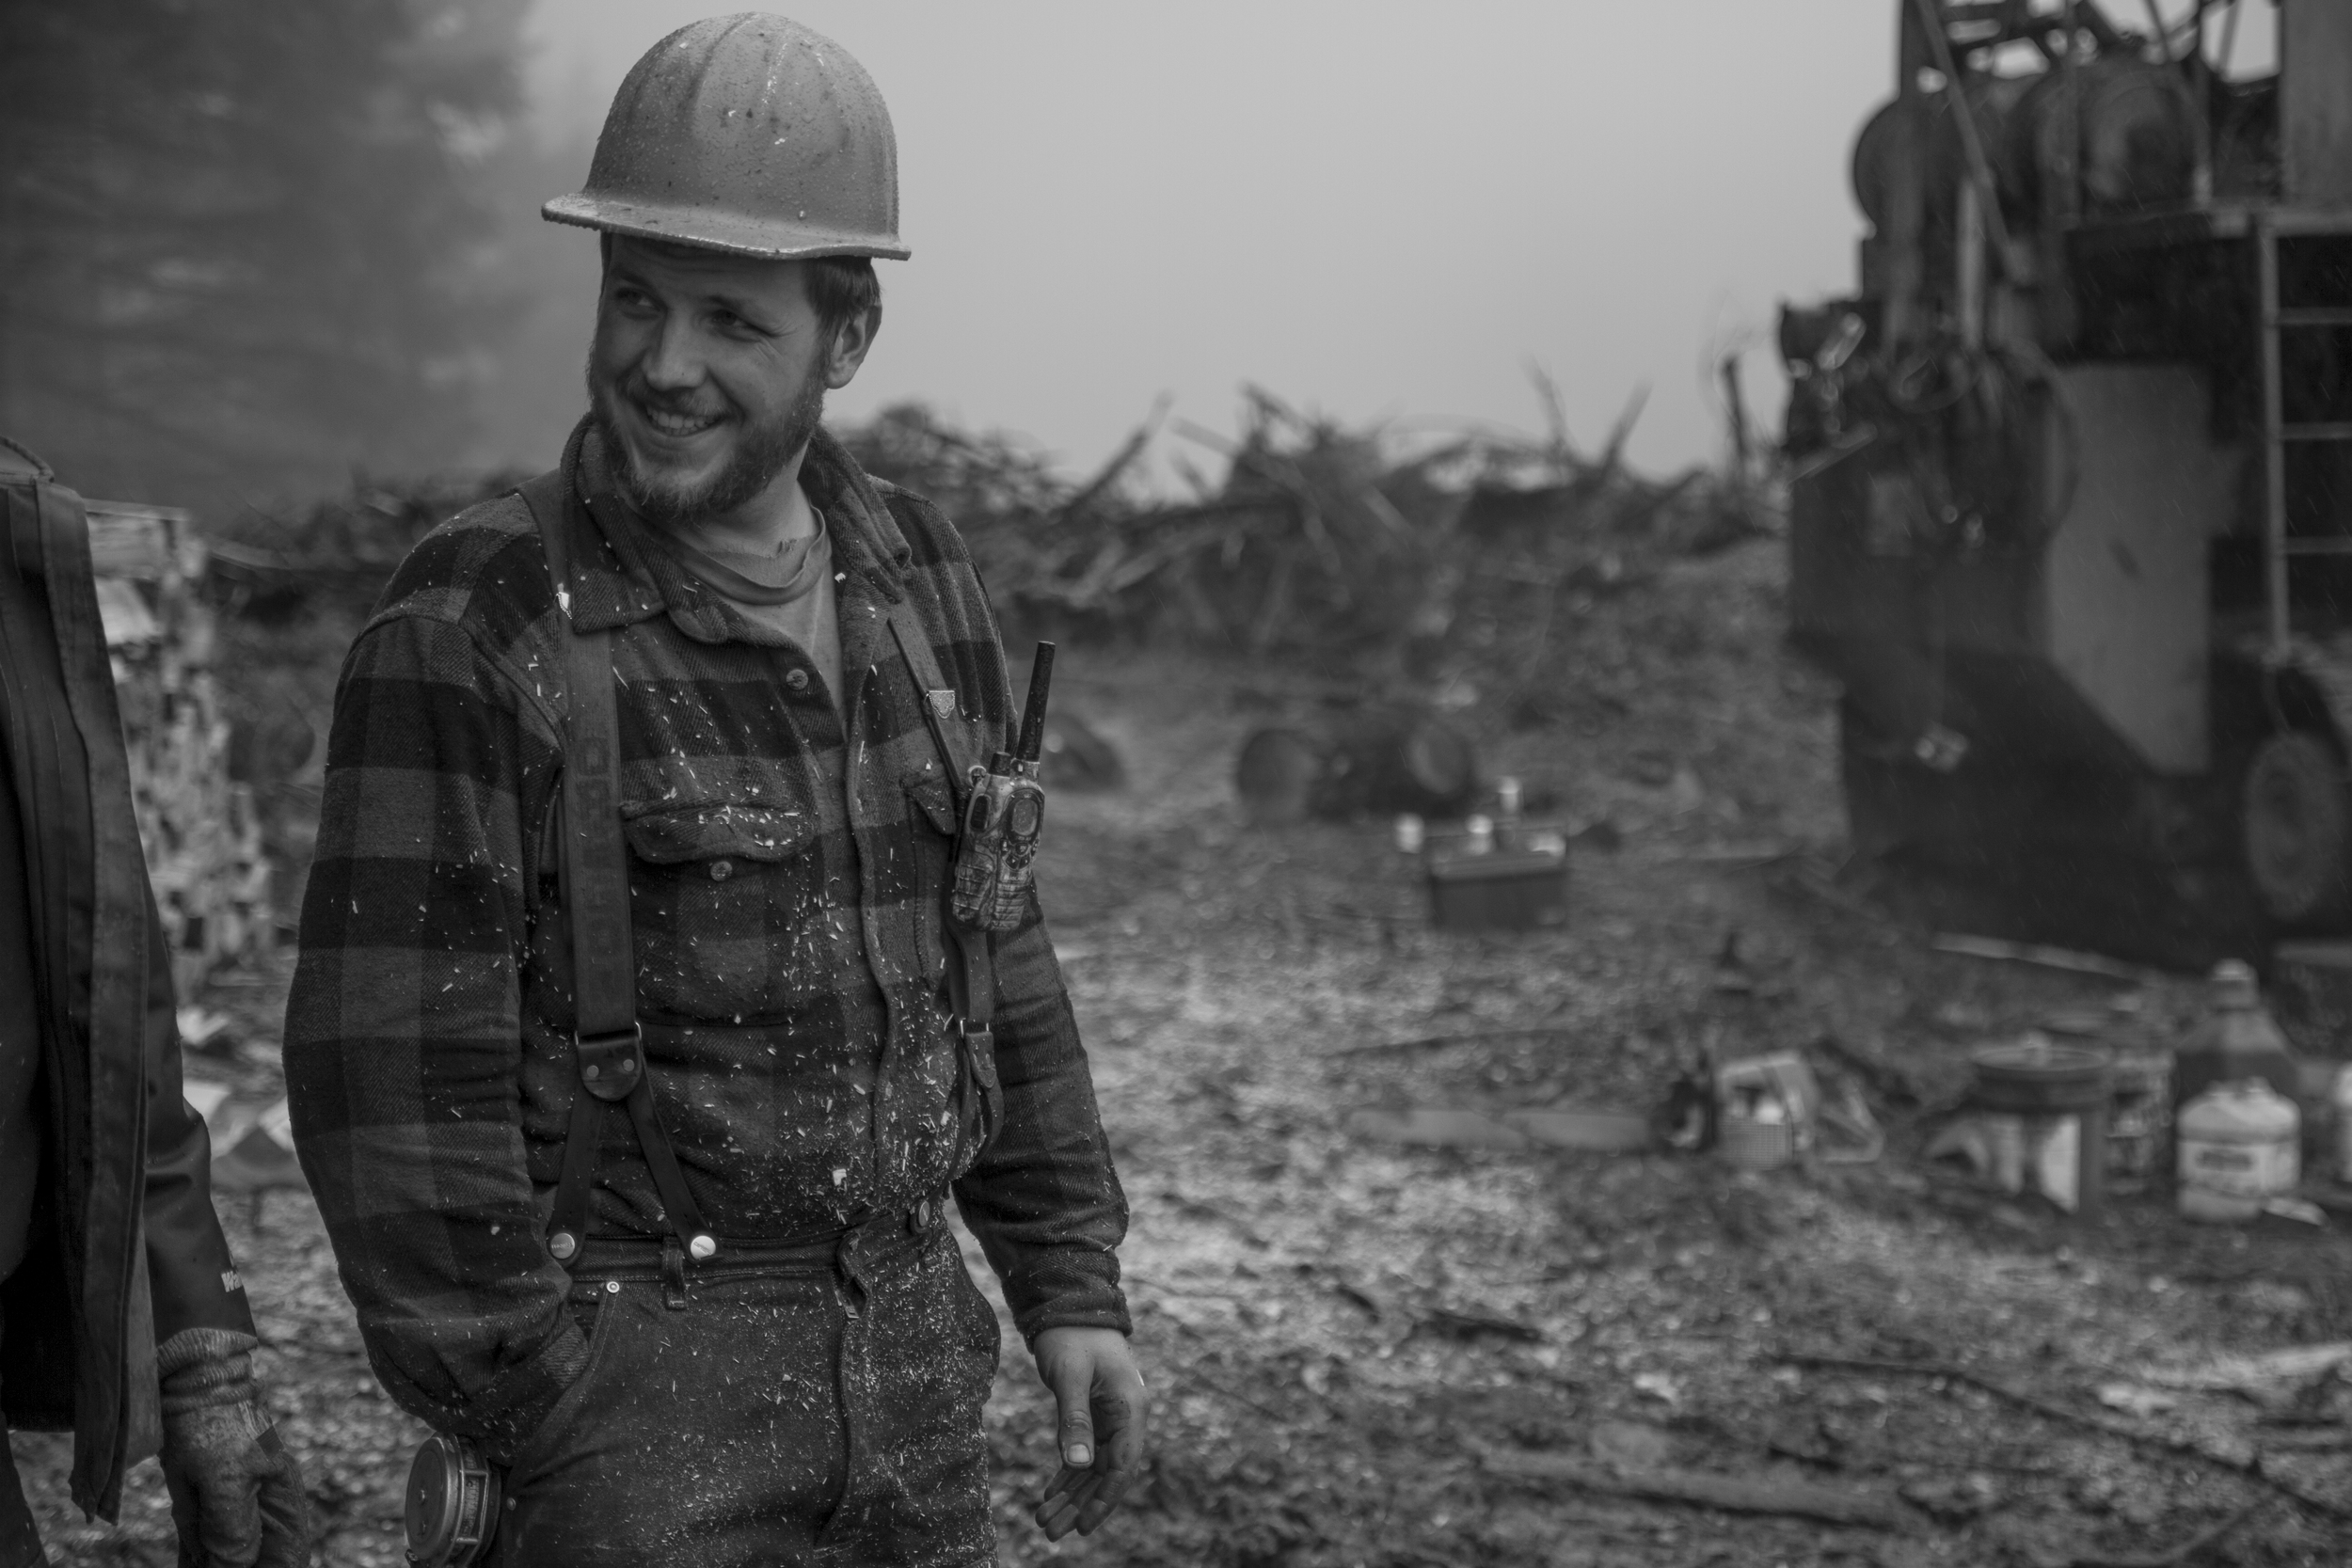 Matt Cook is a fourth-generation logger in Oregon